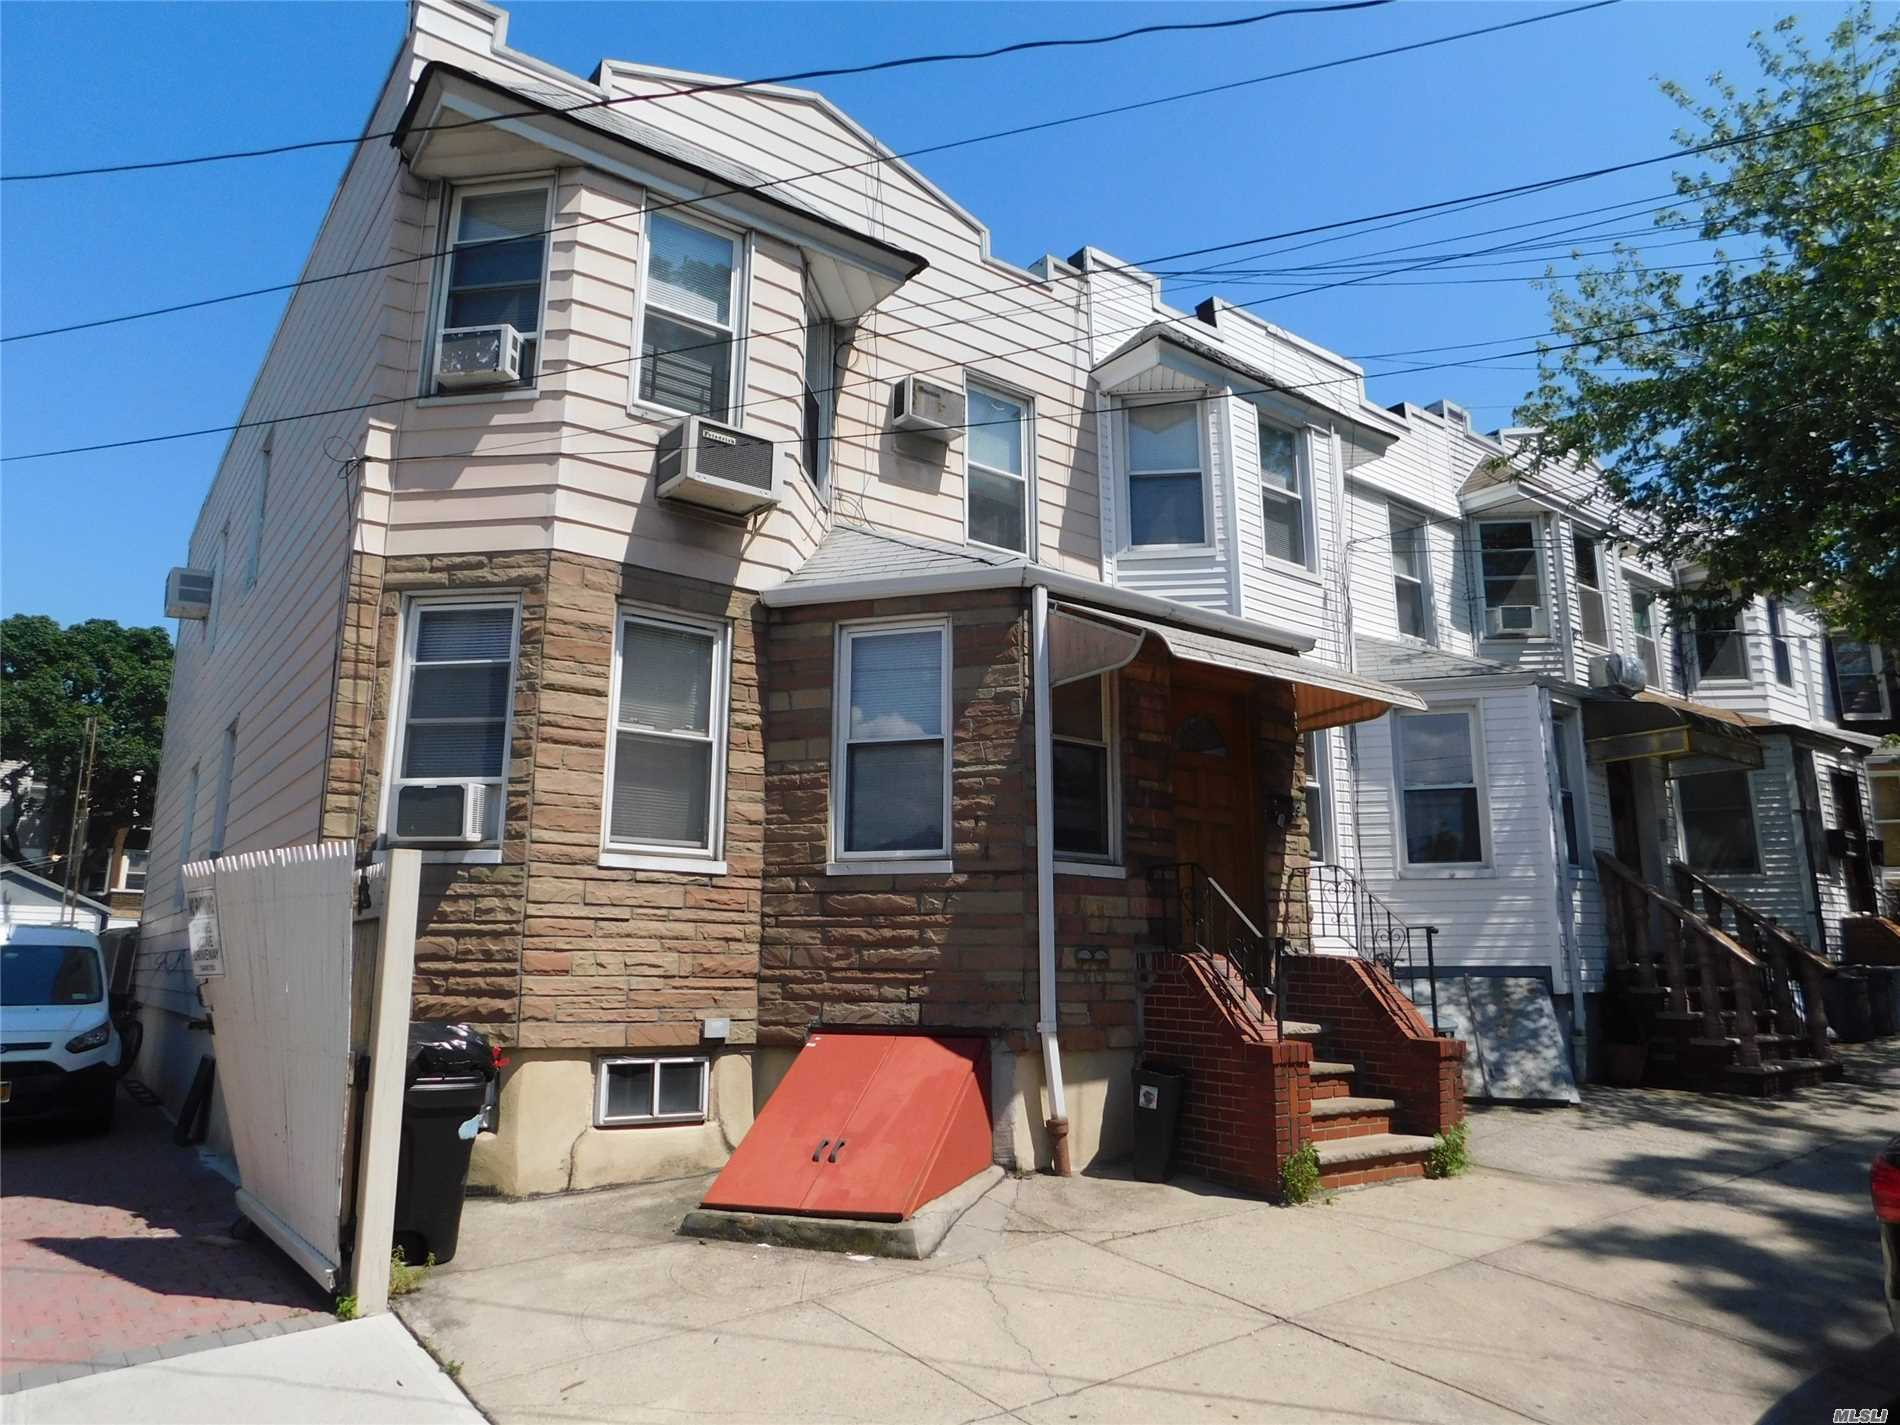 Property for sale at 58-09 60th Place, Maspeth NY 11378, Maspeth,  New York 11378